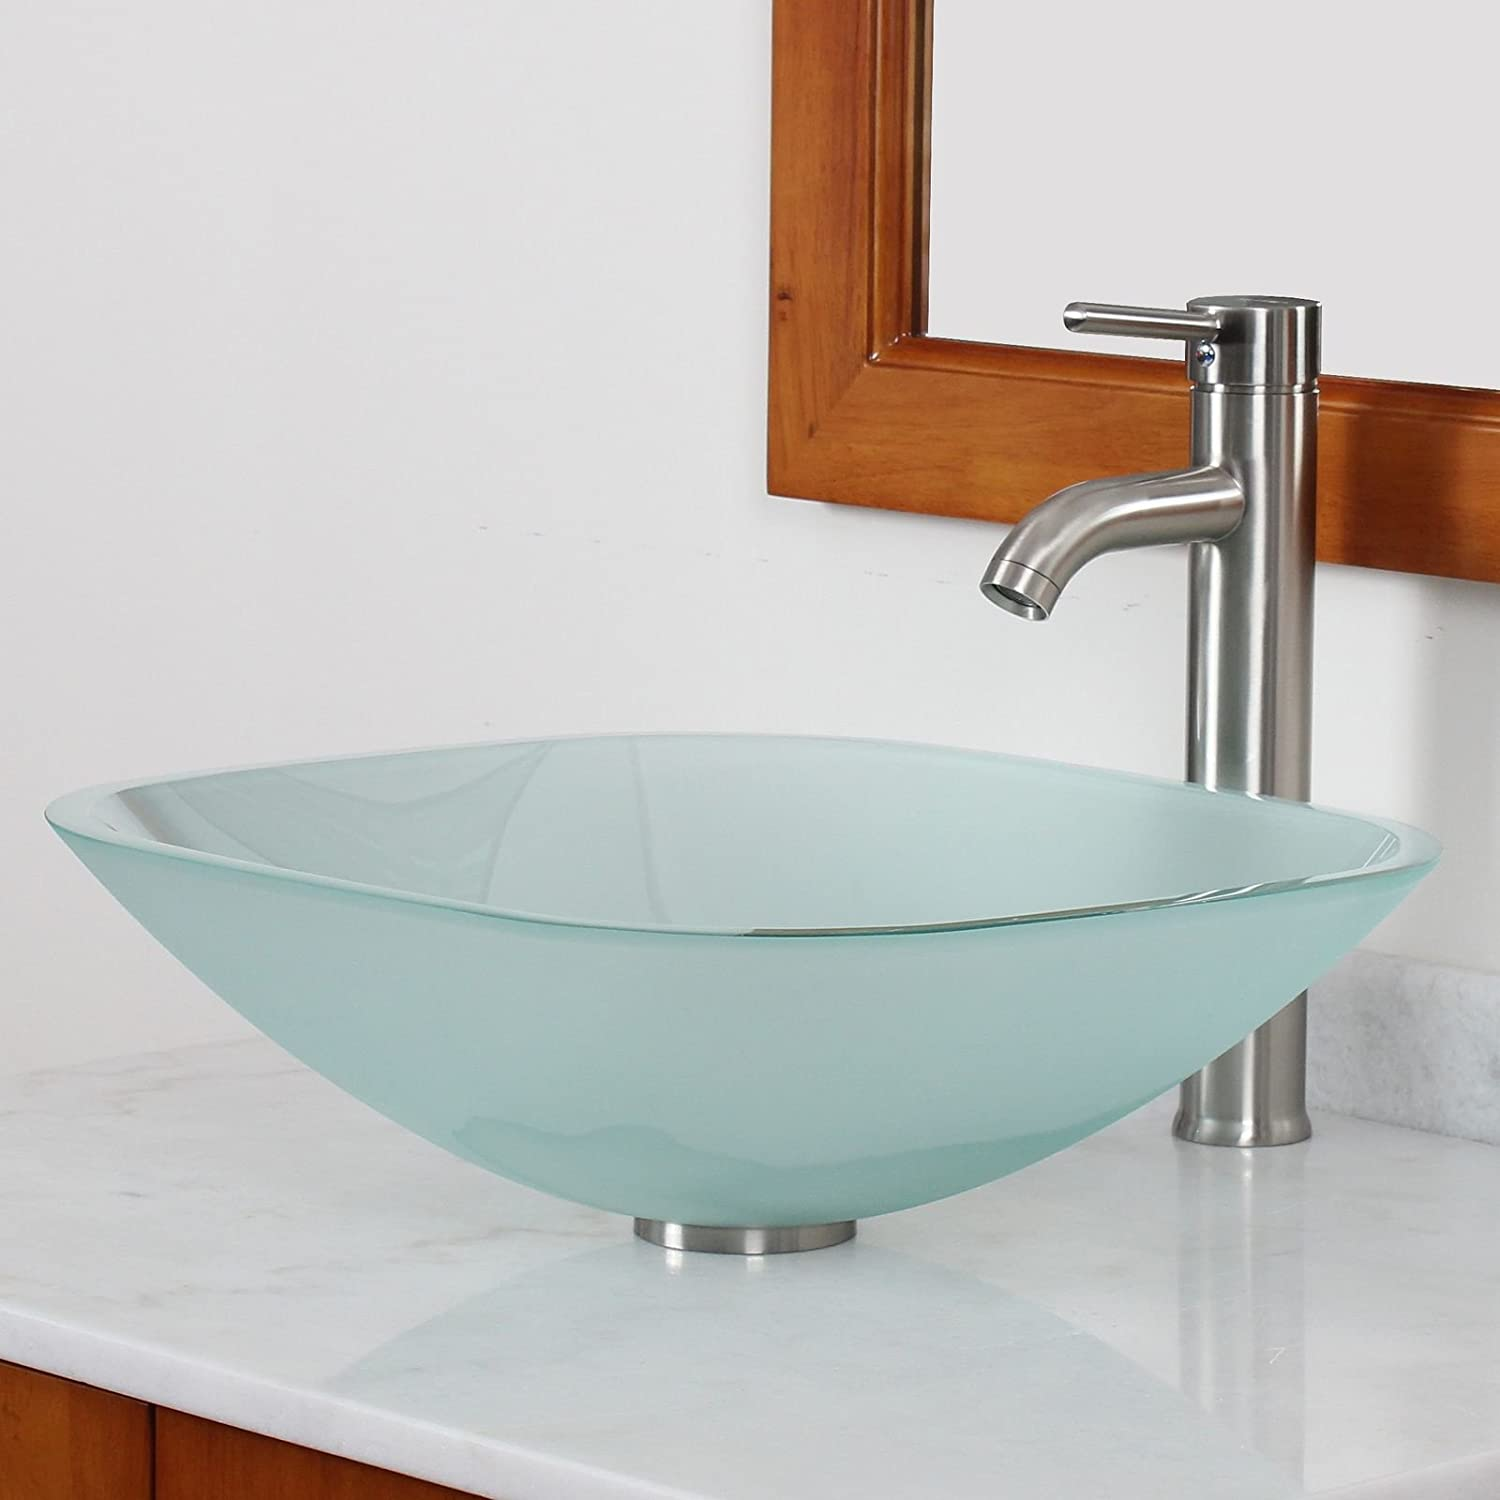 ELITE Bathroom Square Frosted Glass Vessel Sink Brushed Nickel Faucet Combo